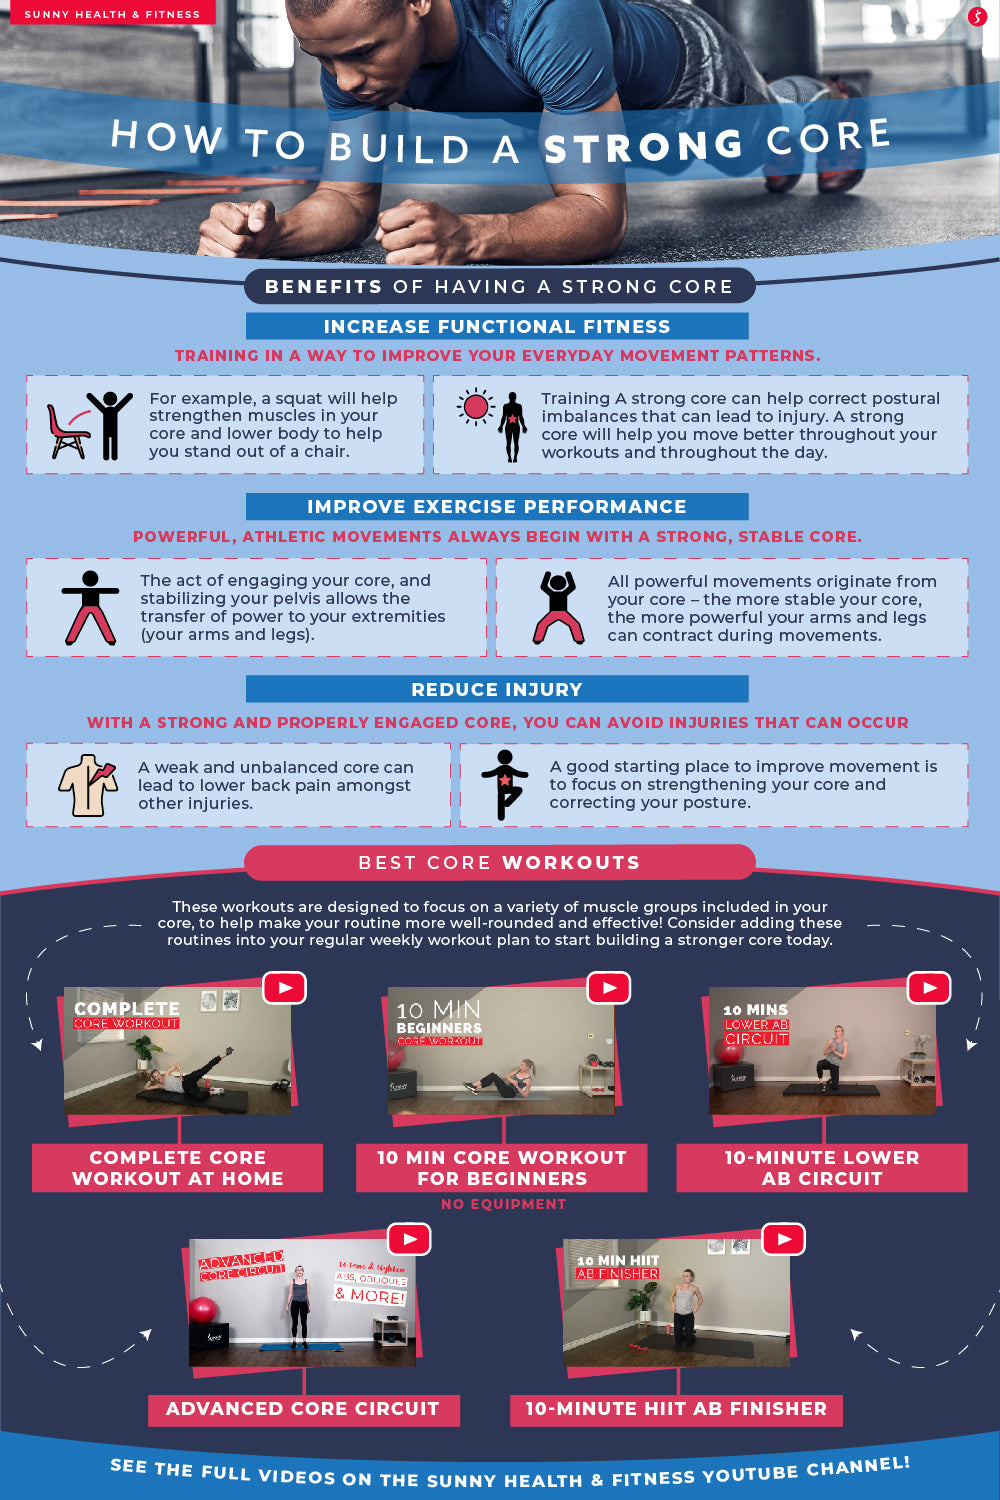 How to Build a Strong Core Infographic